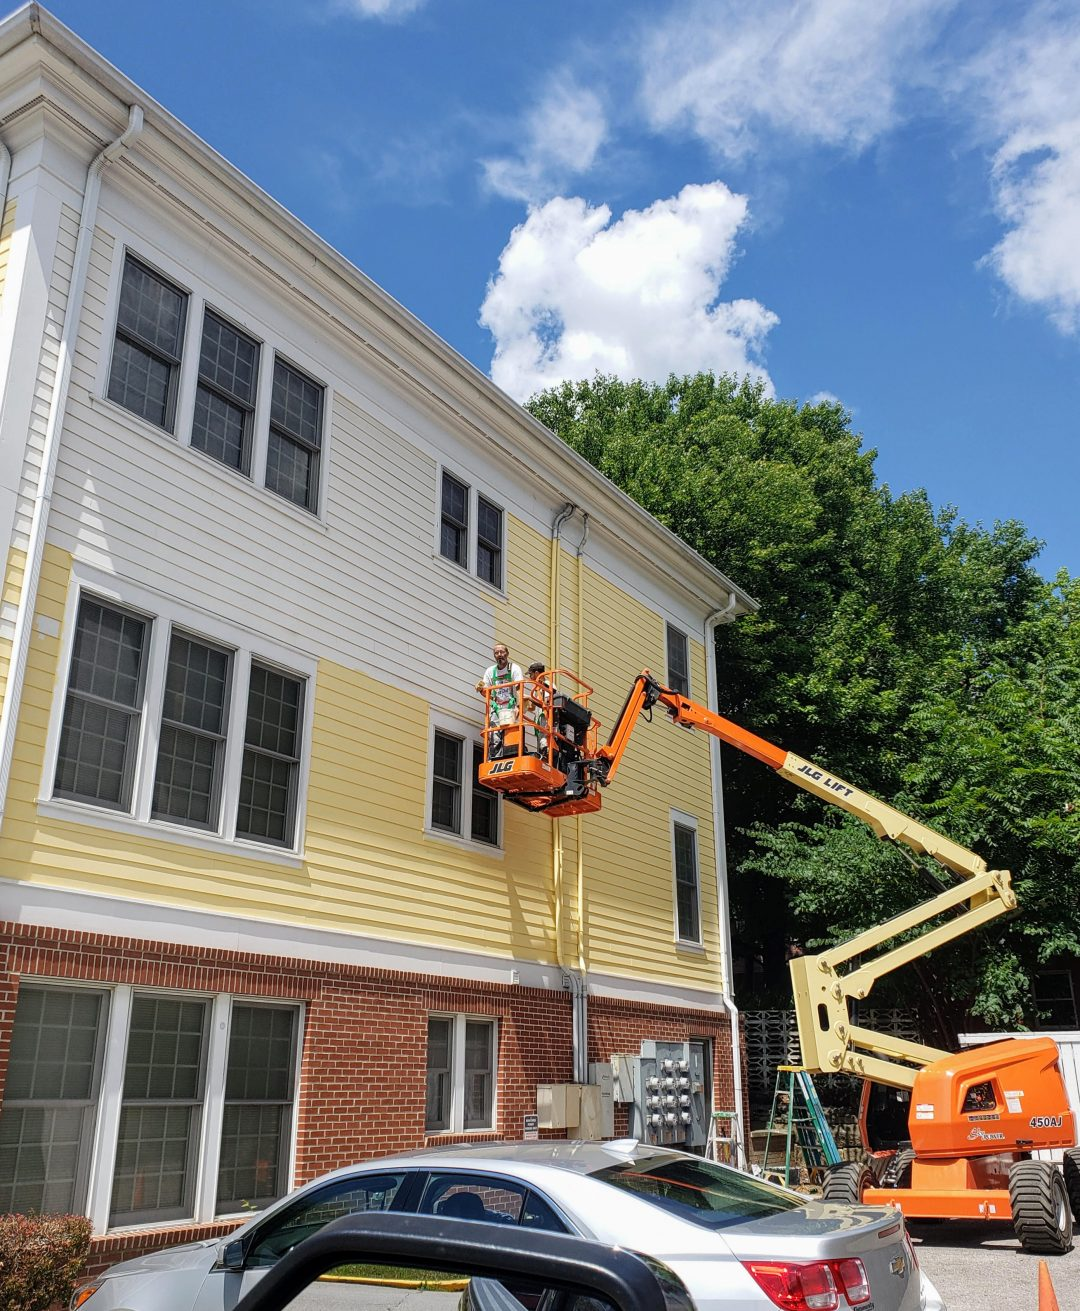 Commercial Painting - The Manor by Omega Properties in Bloomington, Indiana